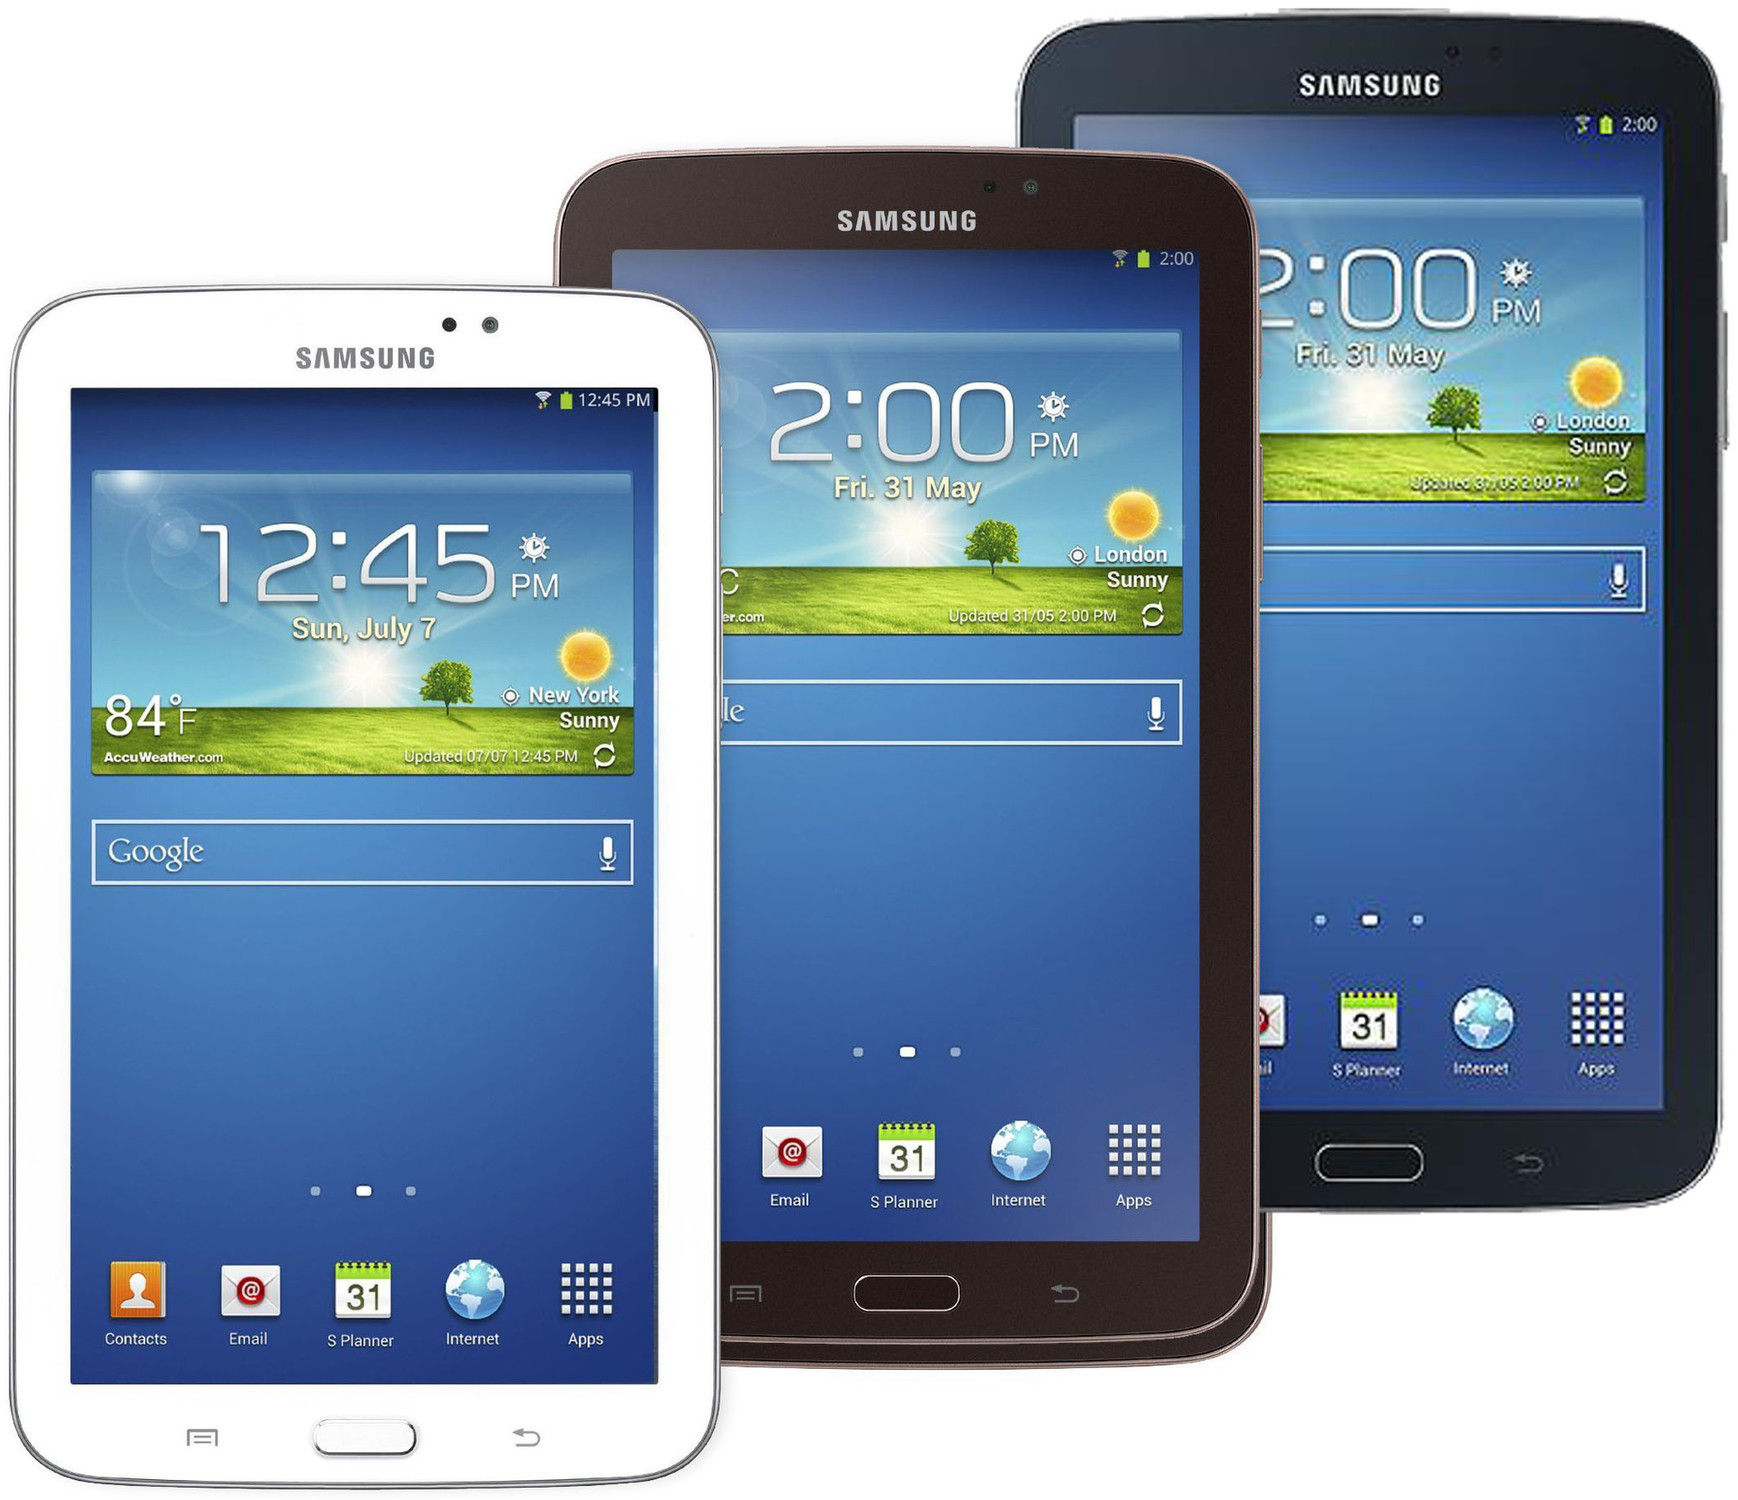 samsung galaxy tab 3 lite 7 0 3g sm t111 specs and price phonegg. Black Bedroom Furniture Sets. Home Design Ideas